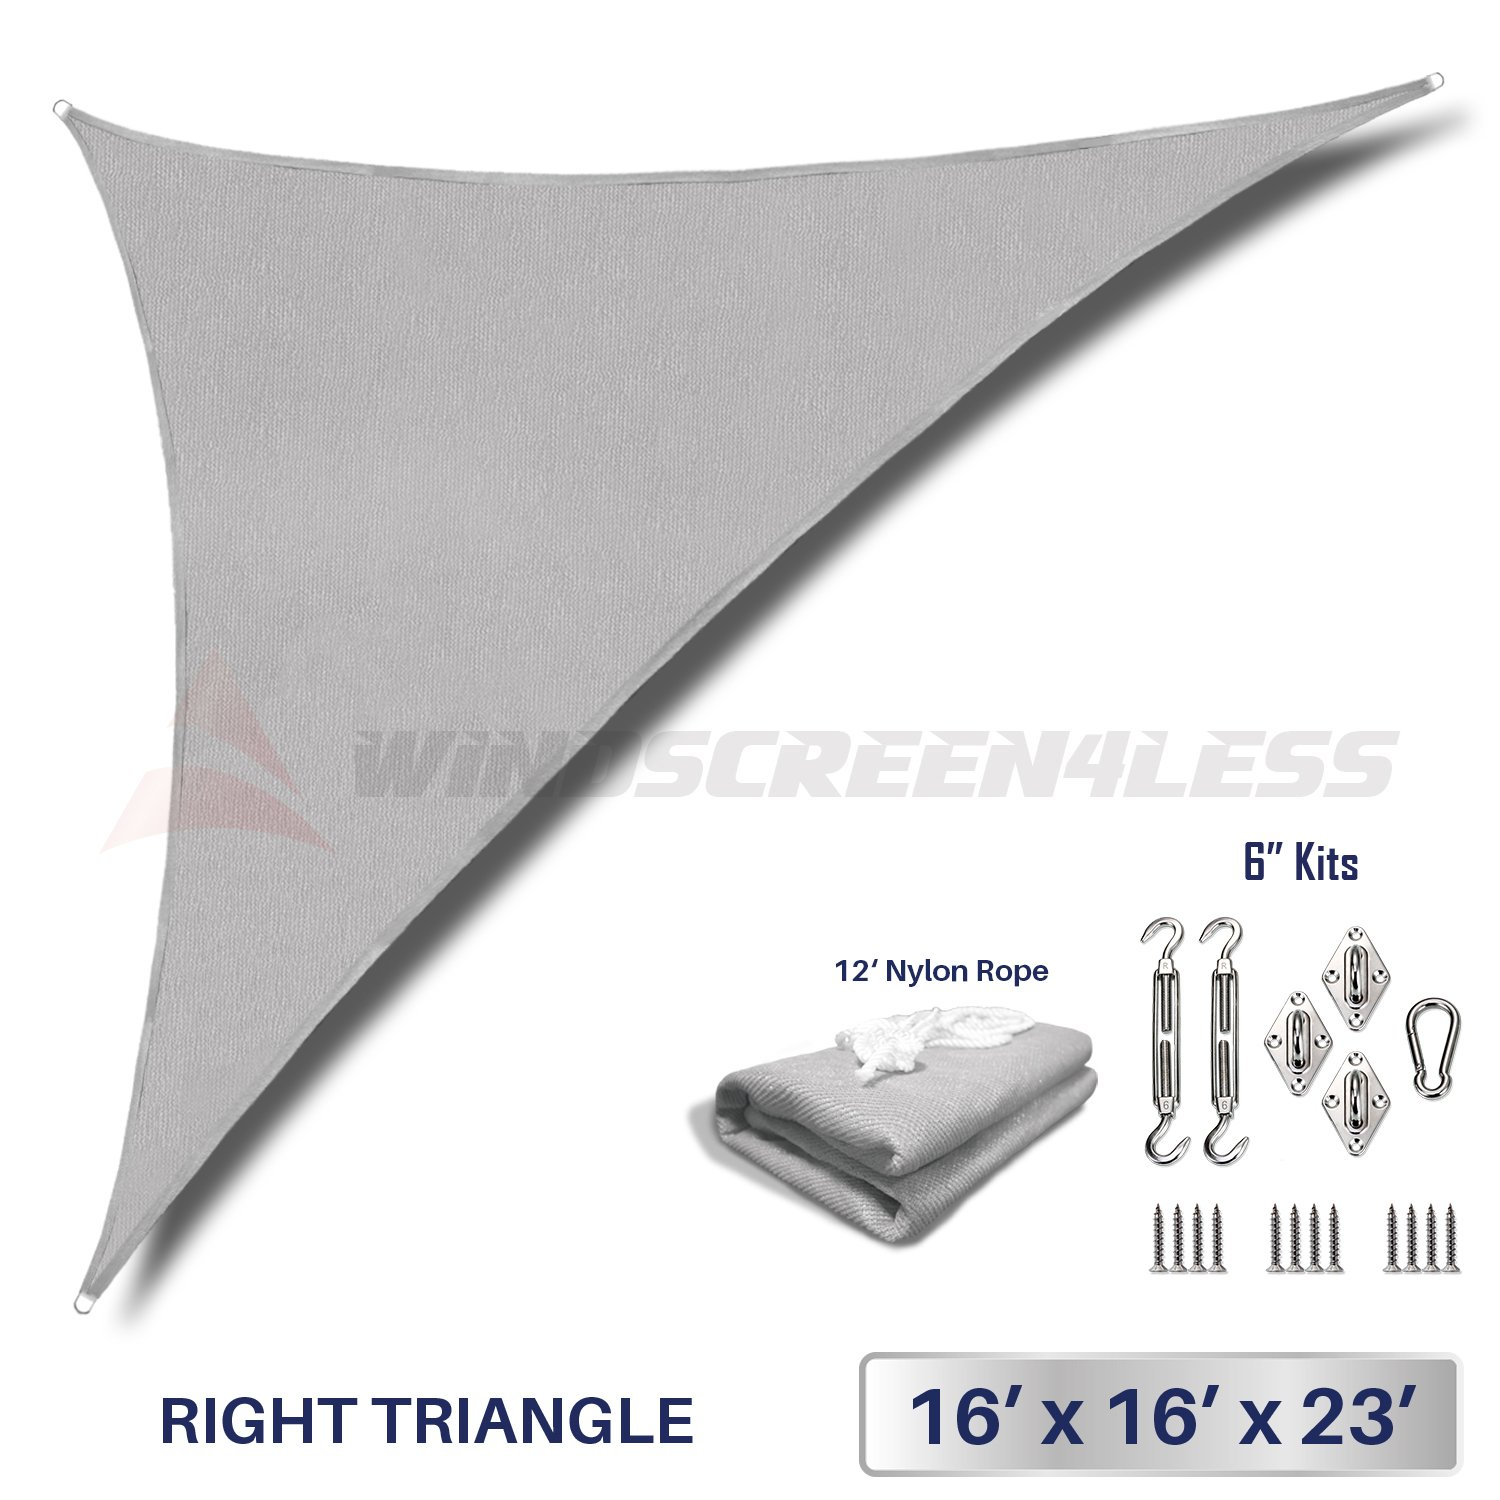 Windscreen4less 16' x 16' x 23' Right Triangle Sun Shade Sail with 6 inch Hardware Kit - Light Grey Durable UV Shelter Canopy for Patio Outdoor Backyard - Custom